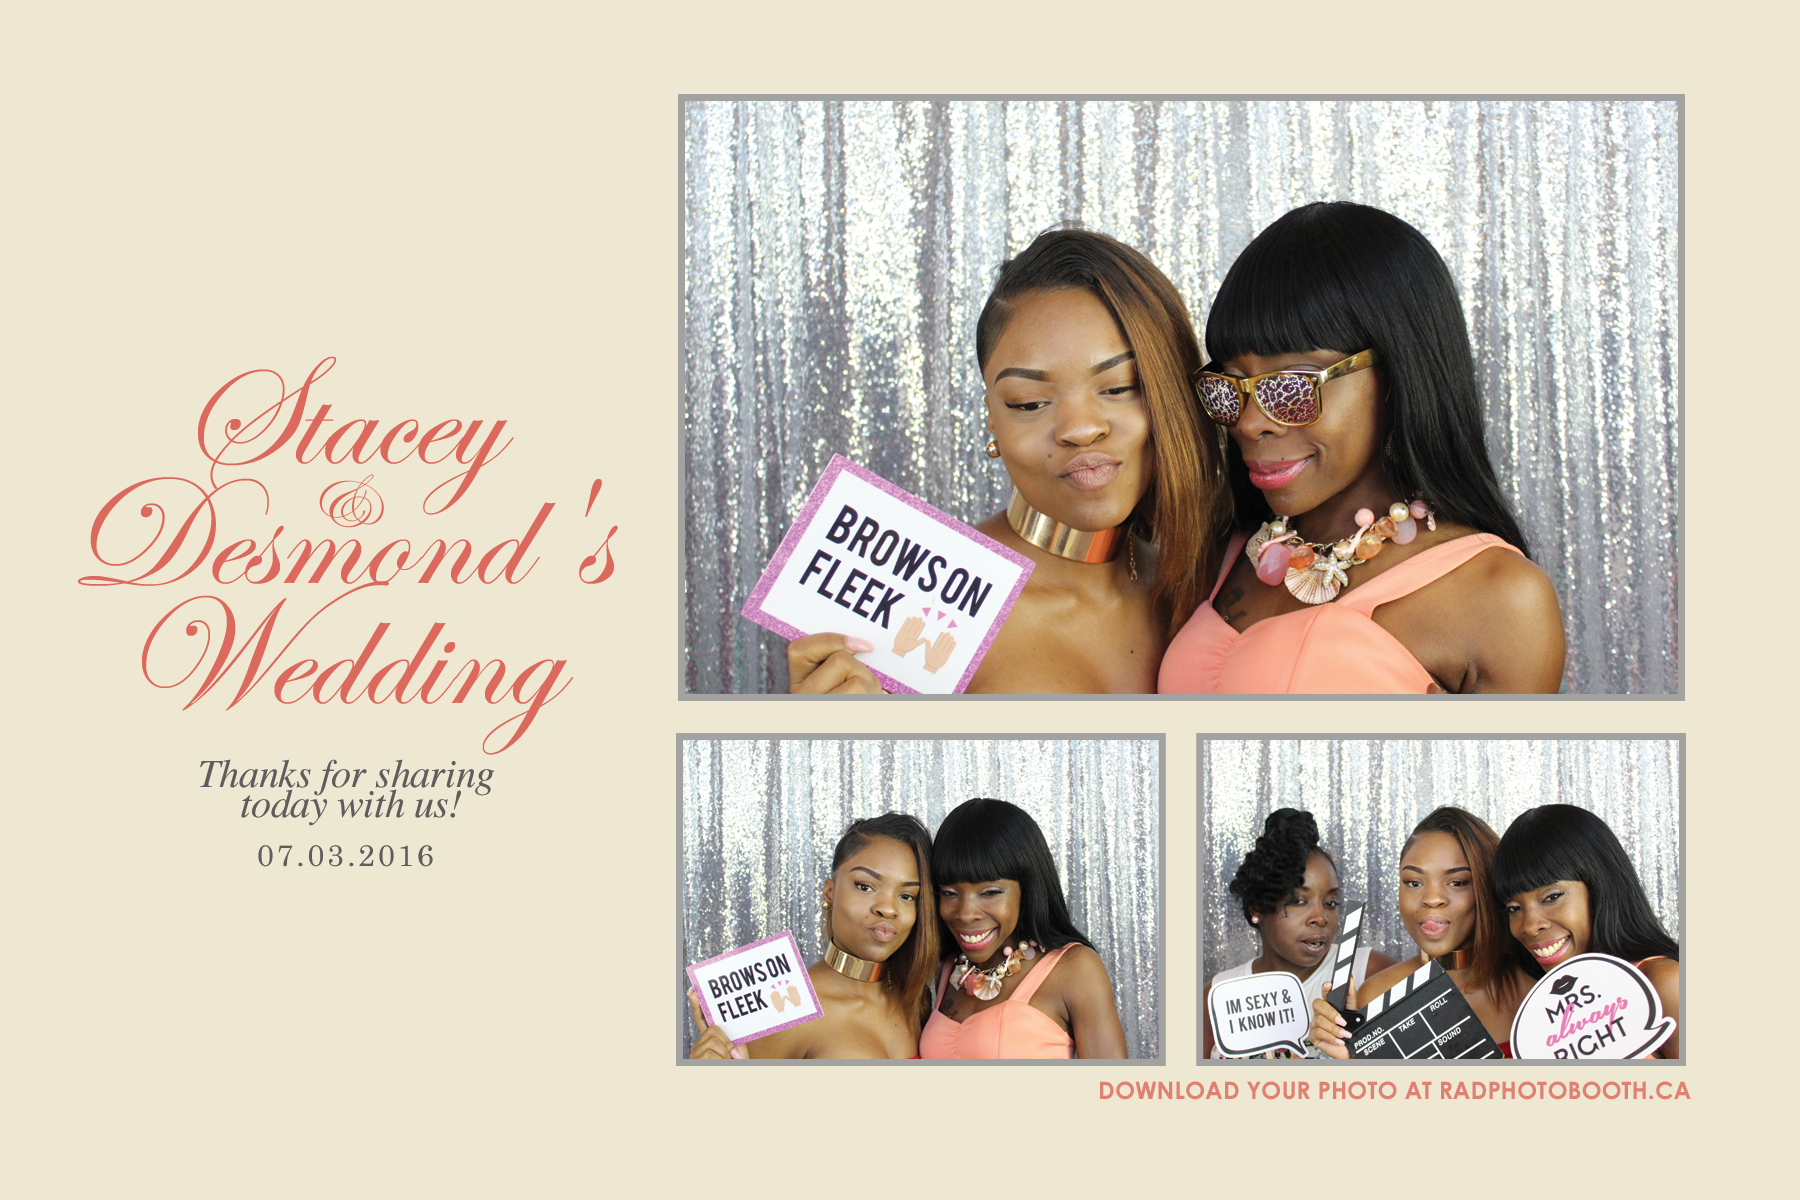 Stacey & Desmond Wedding